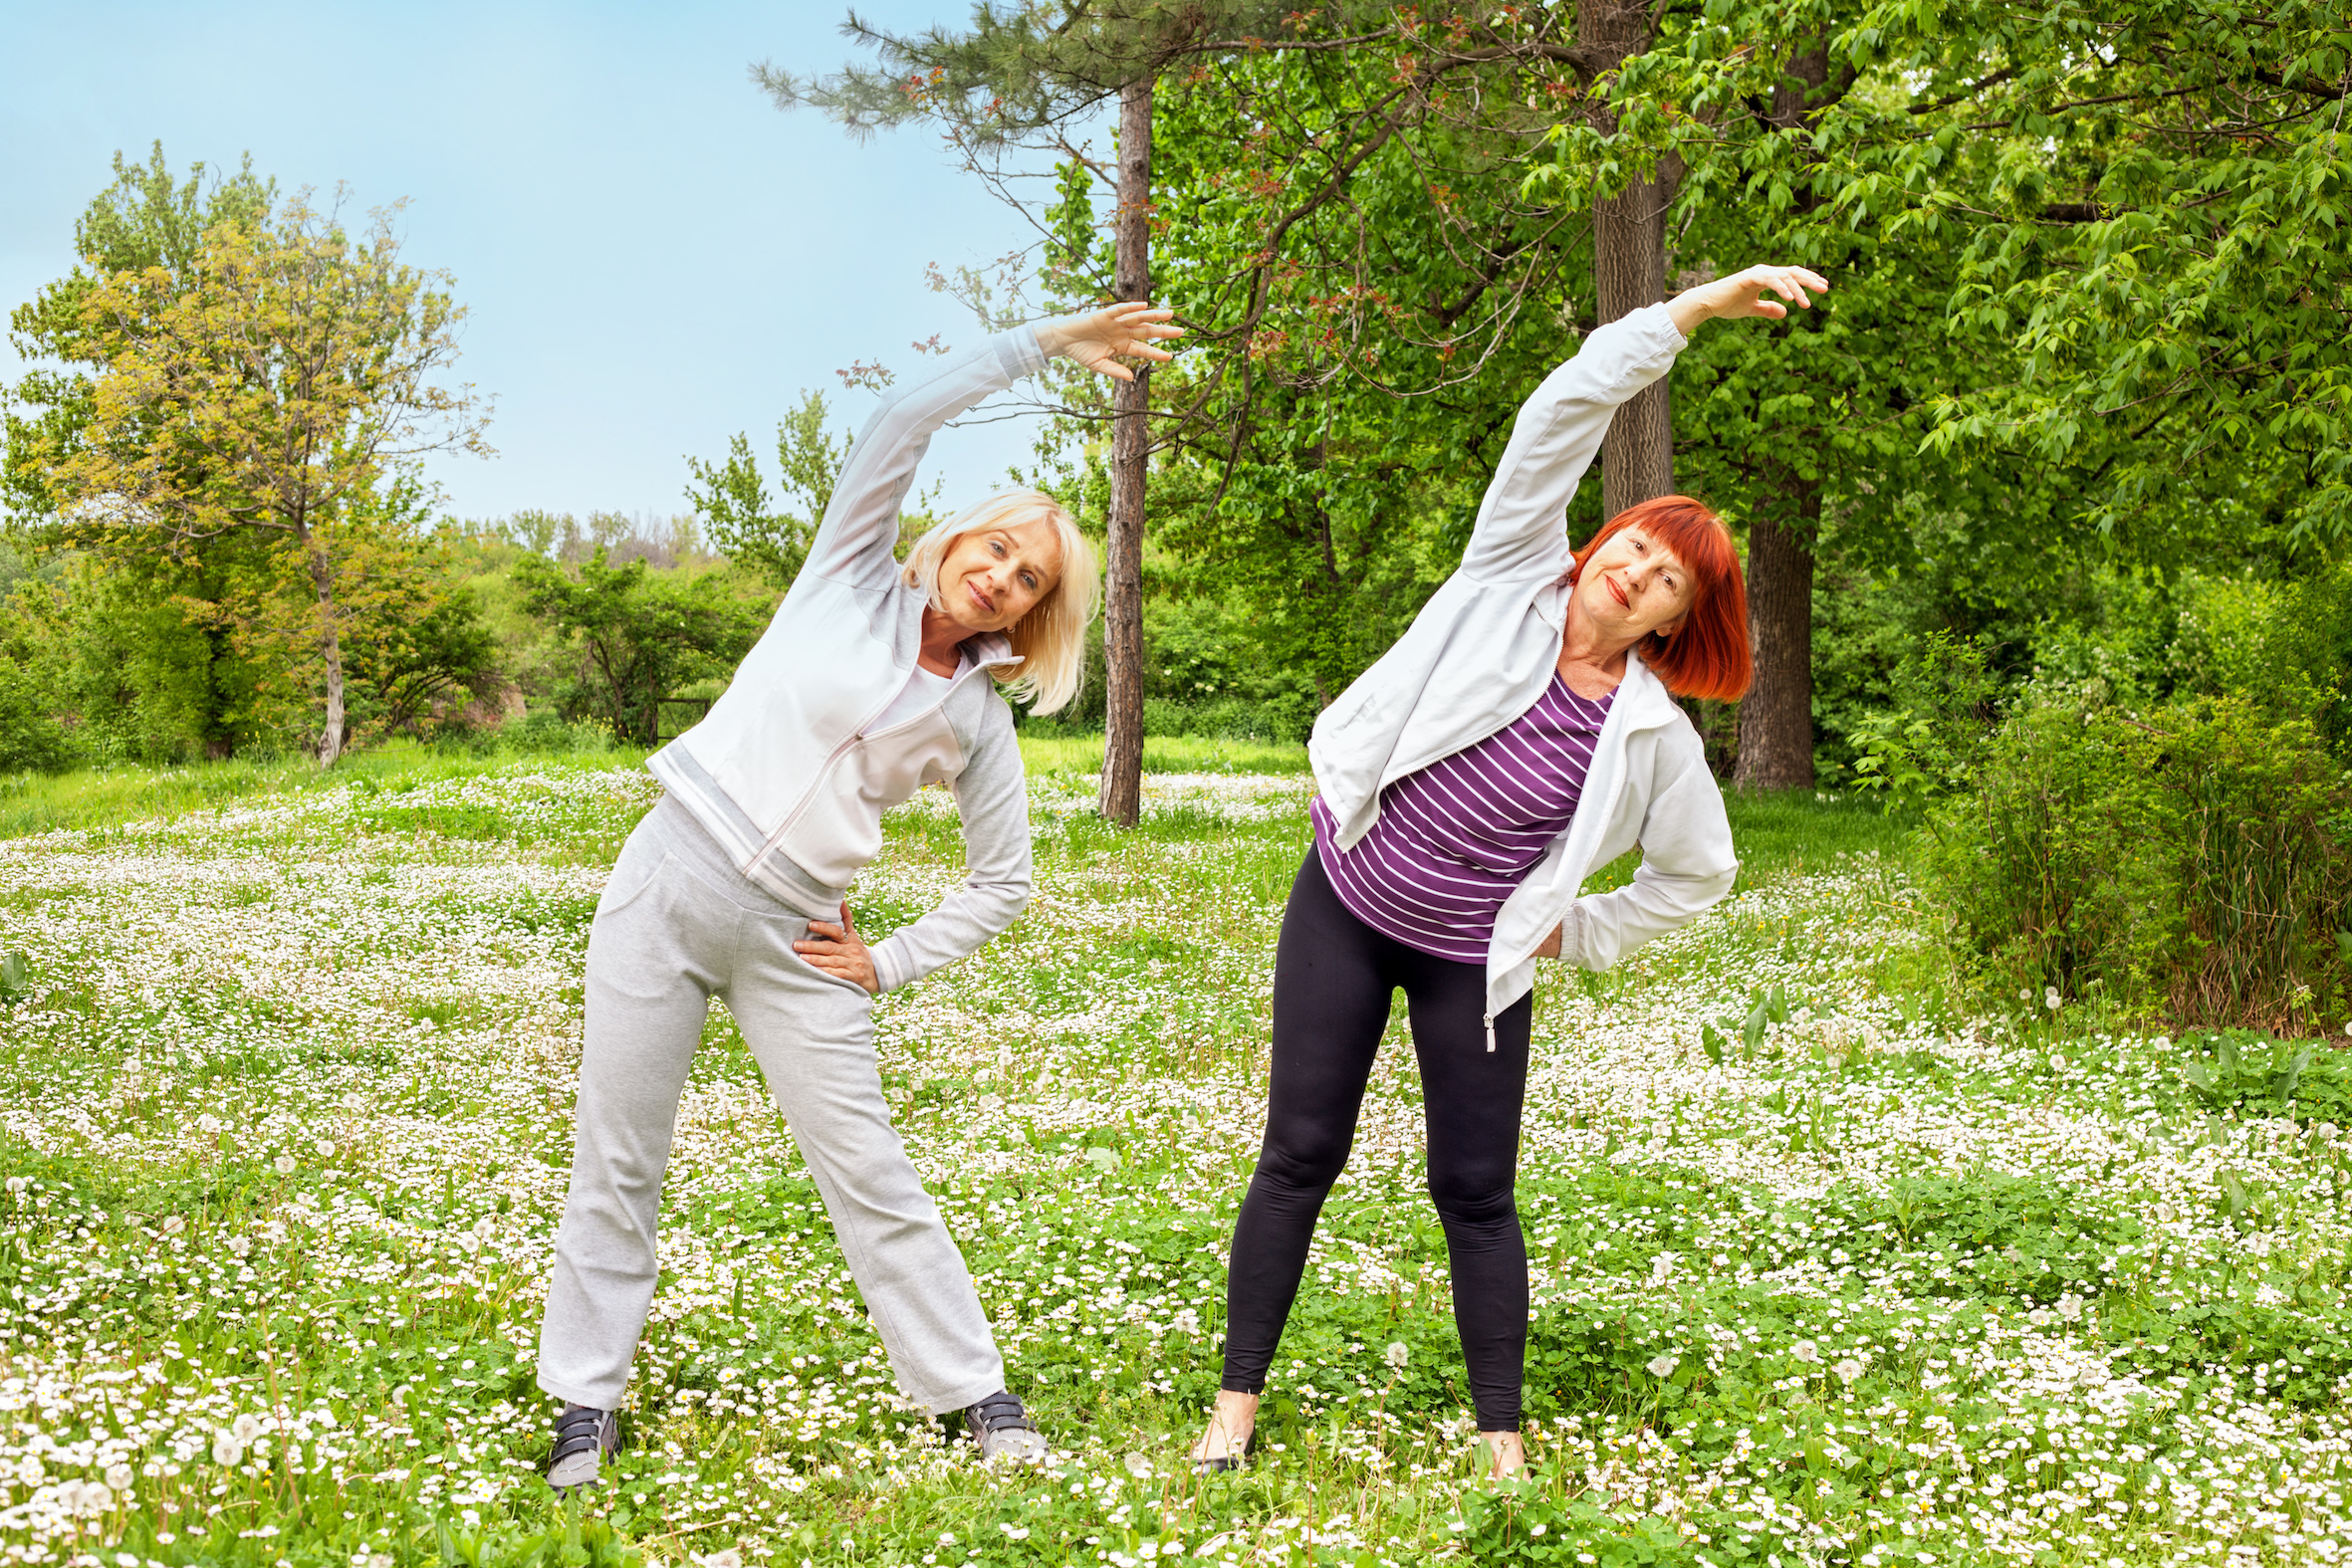 Senior Women (50s And 60s) Stretching Outdoors